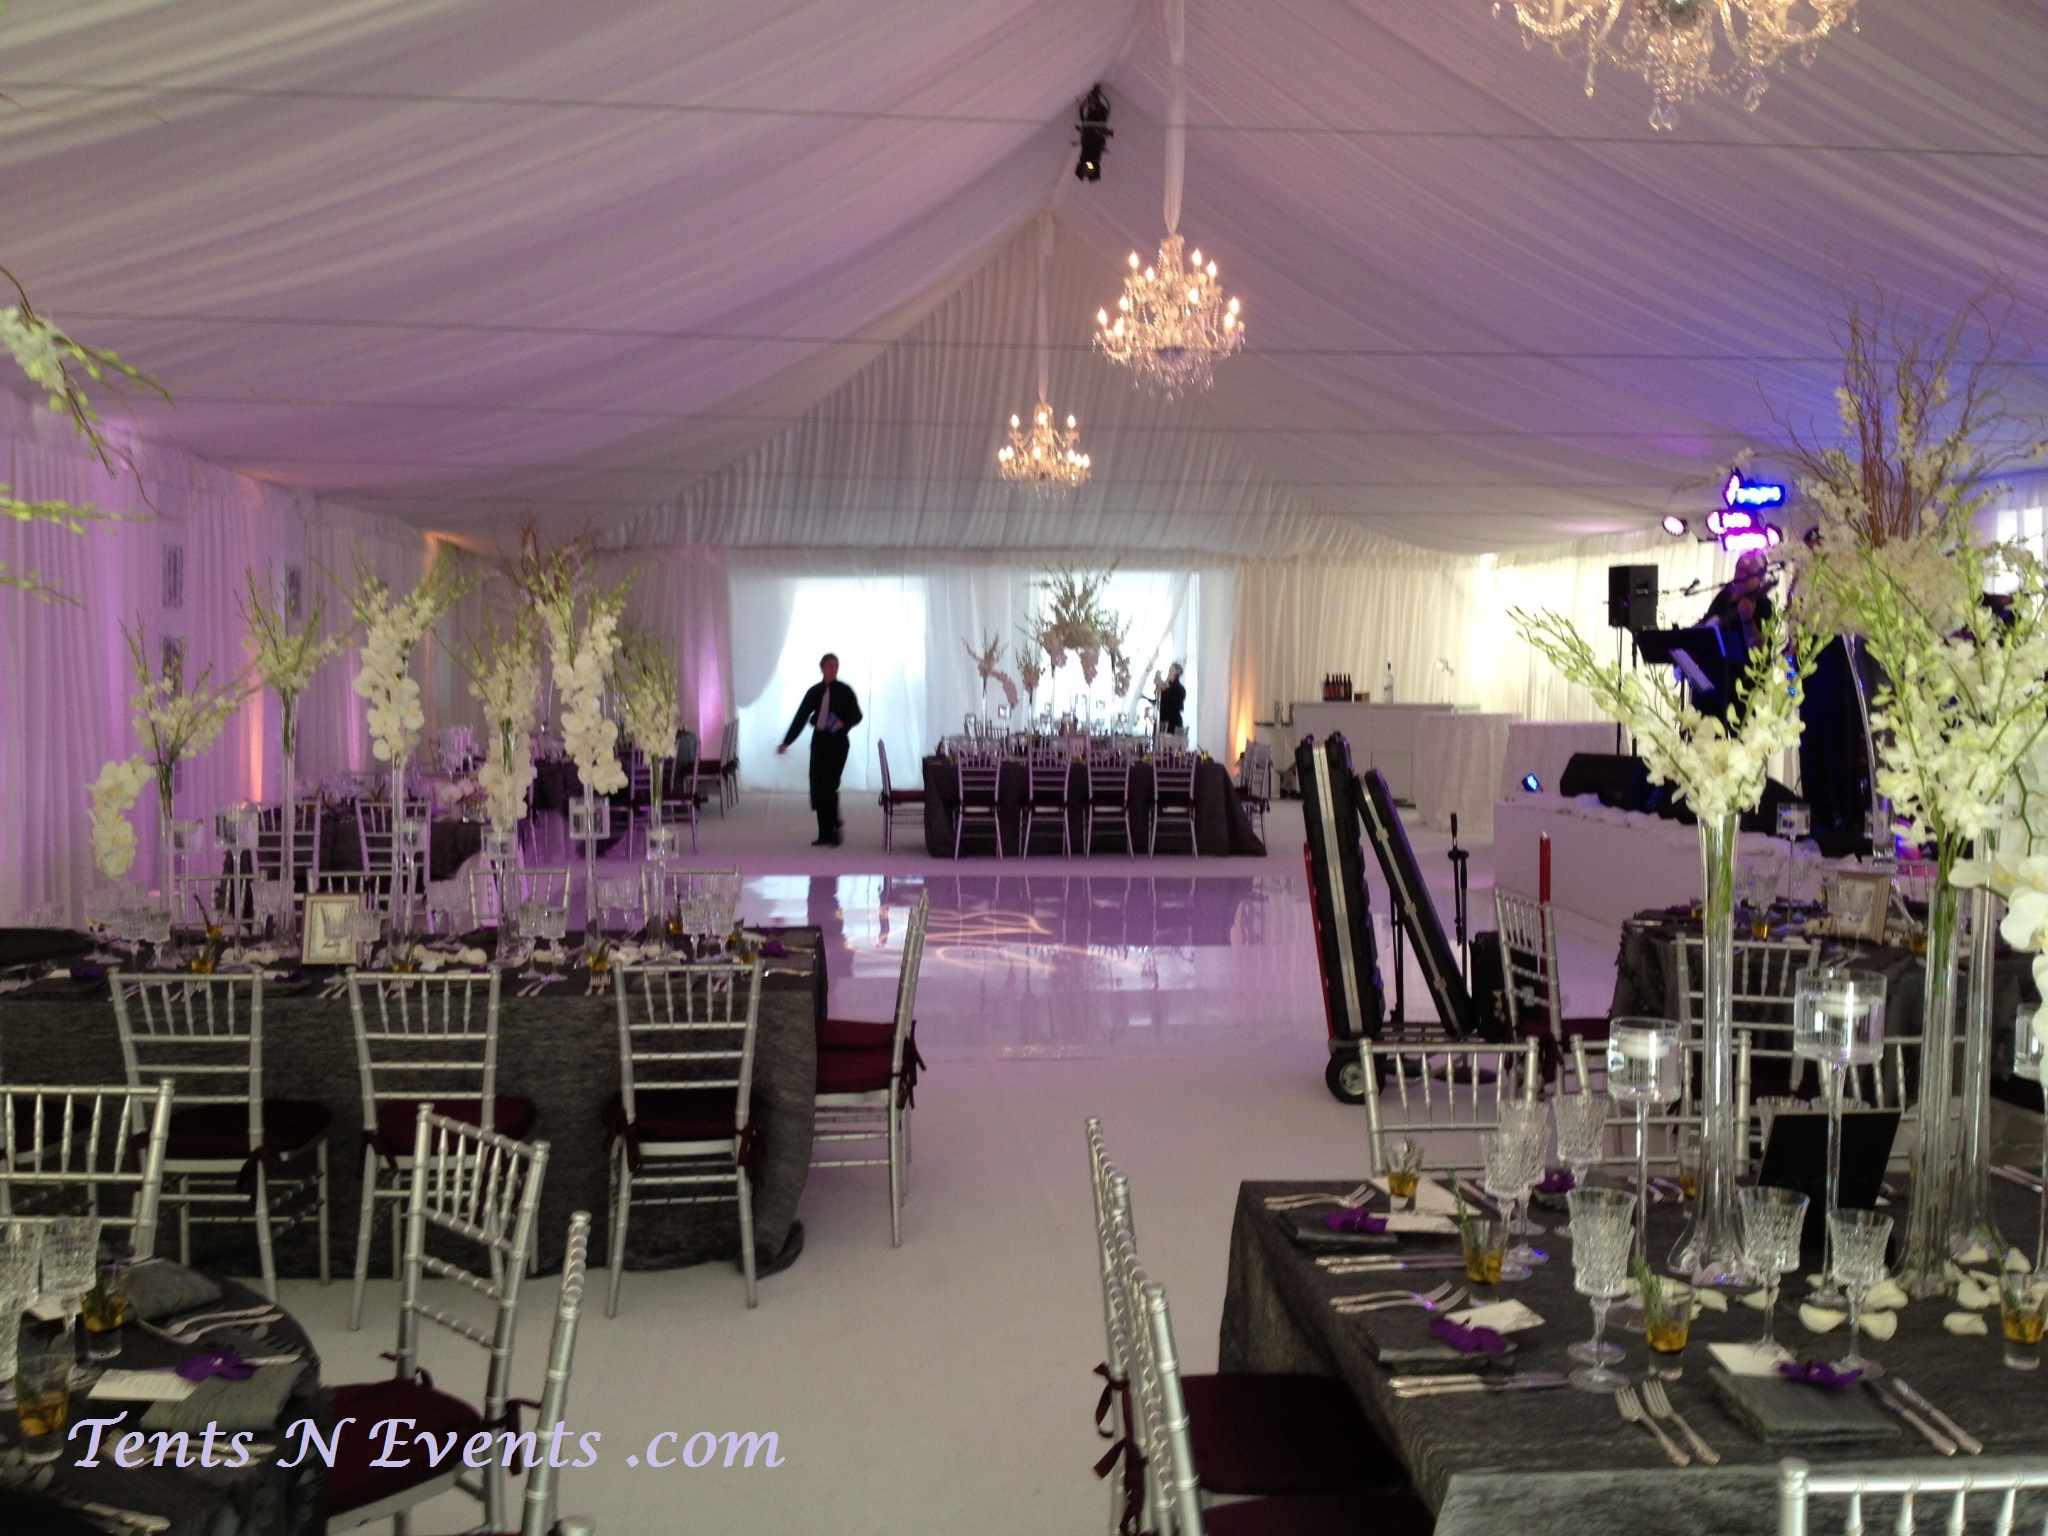 White Ceiling Liner with Perimeter wall Drapping -